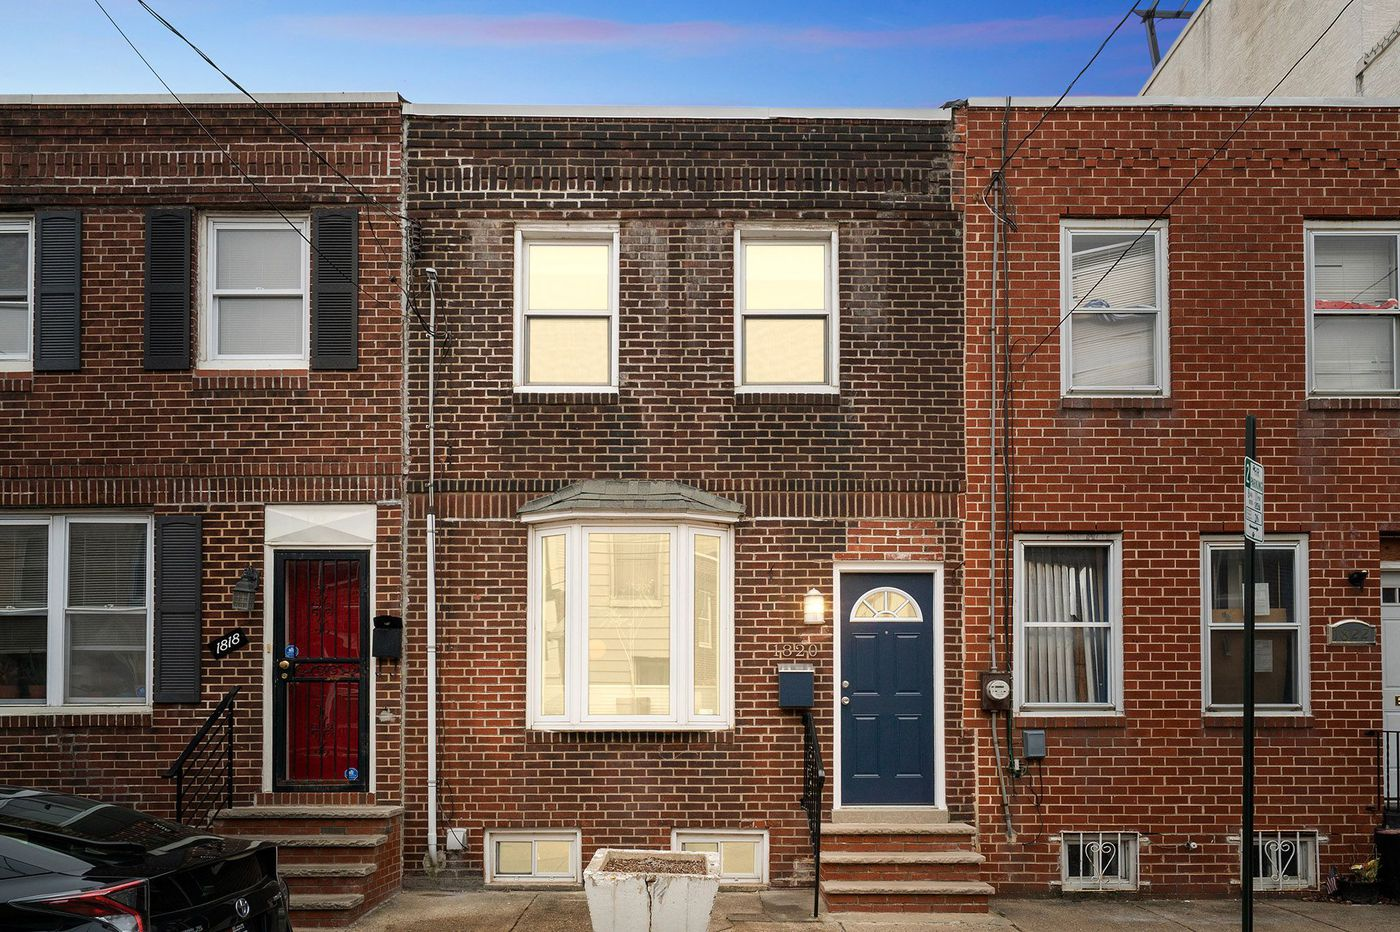 On the market: A two-bedroom rowhouse in Point Breeze for $350,000